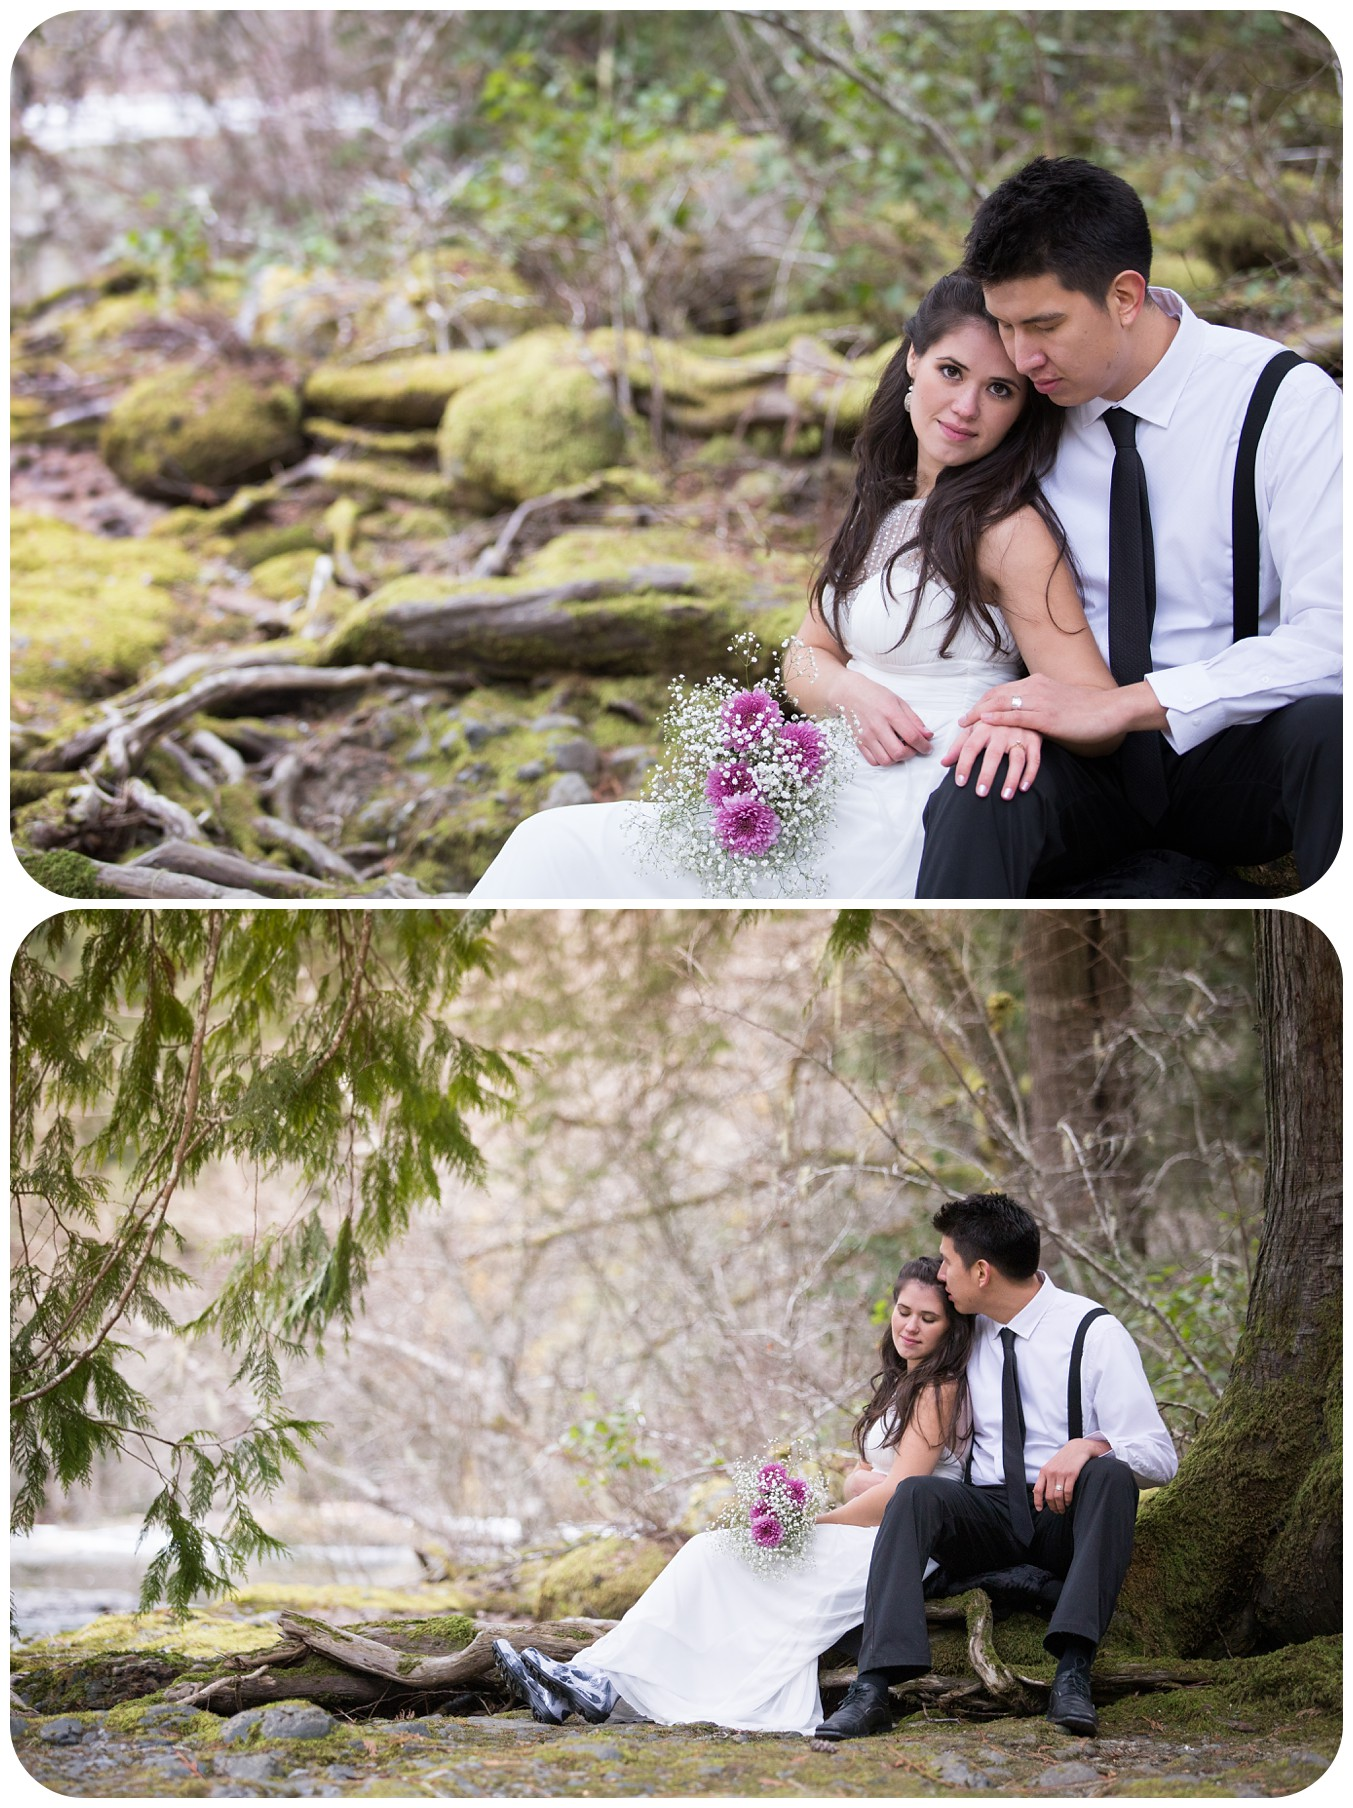 forest winter elopement at englishman river falls, forest portraits for bride and groom, sitting under big tree in forest, romantic wedding photographer parksville bc